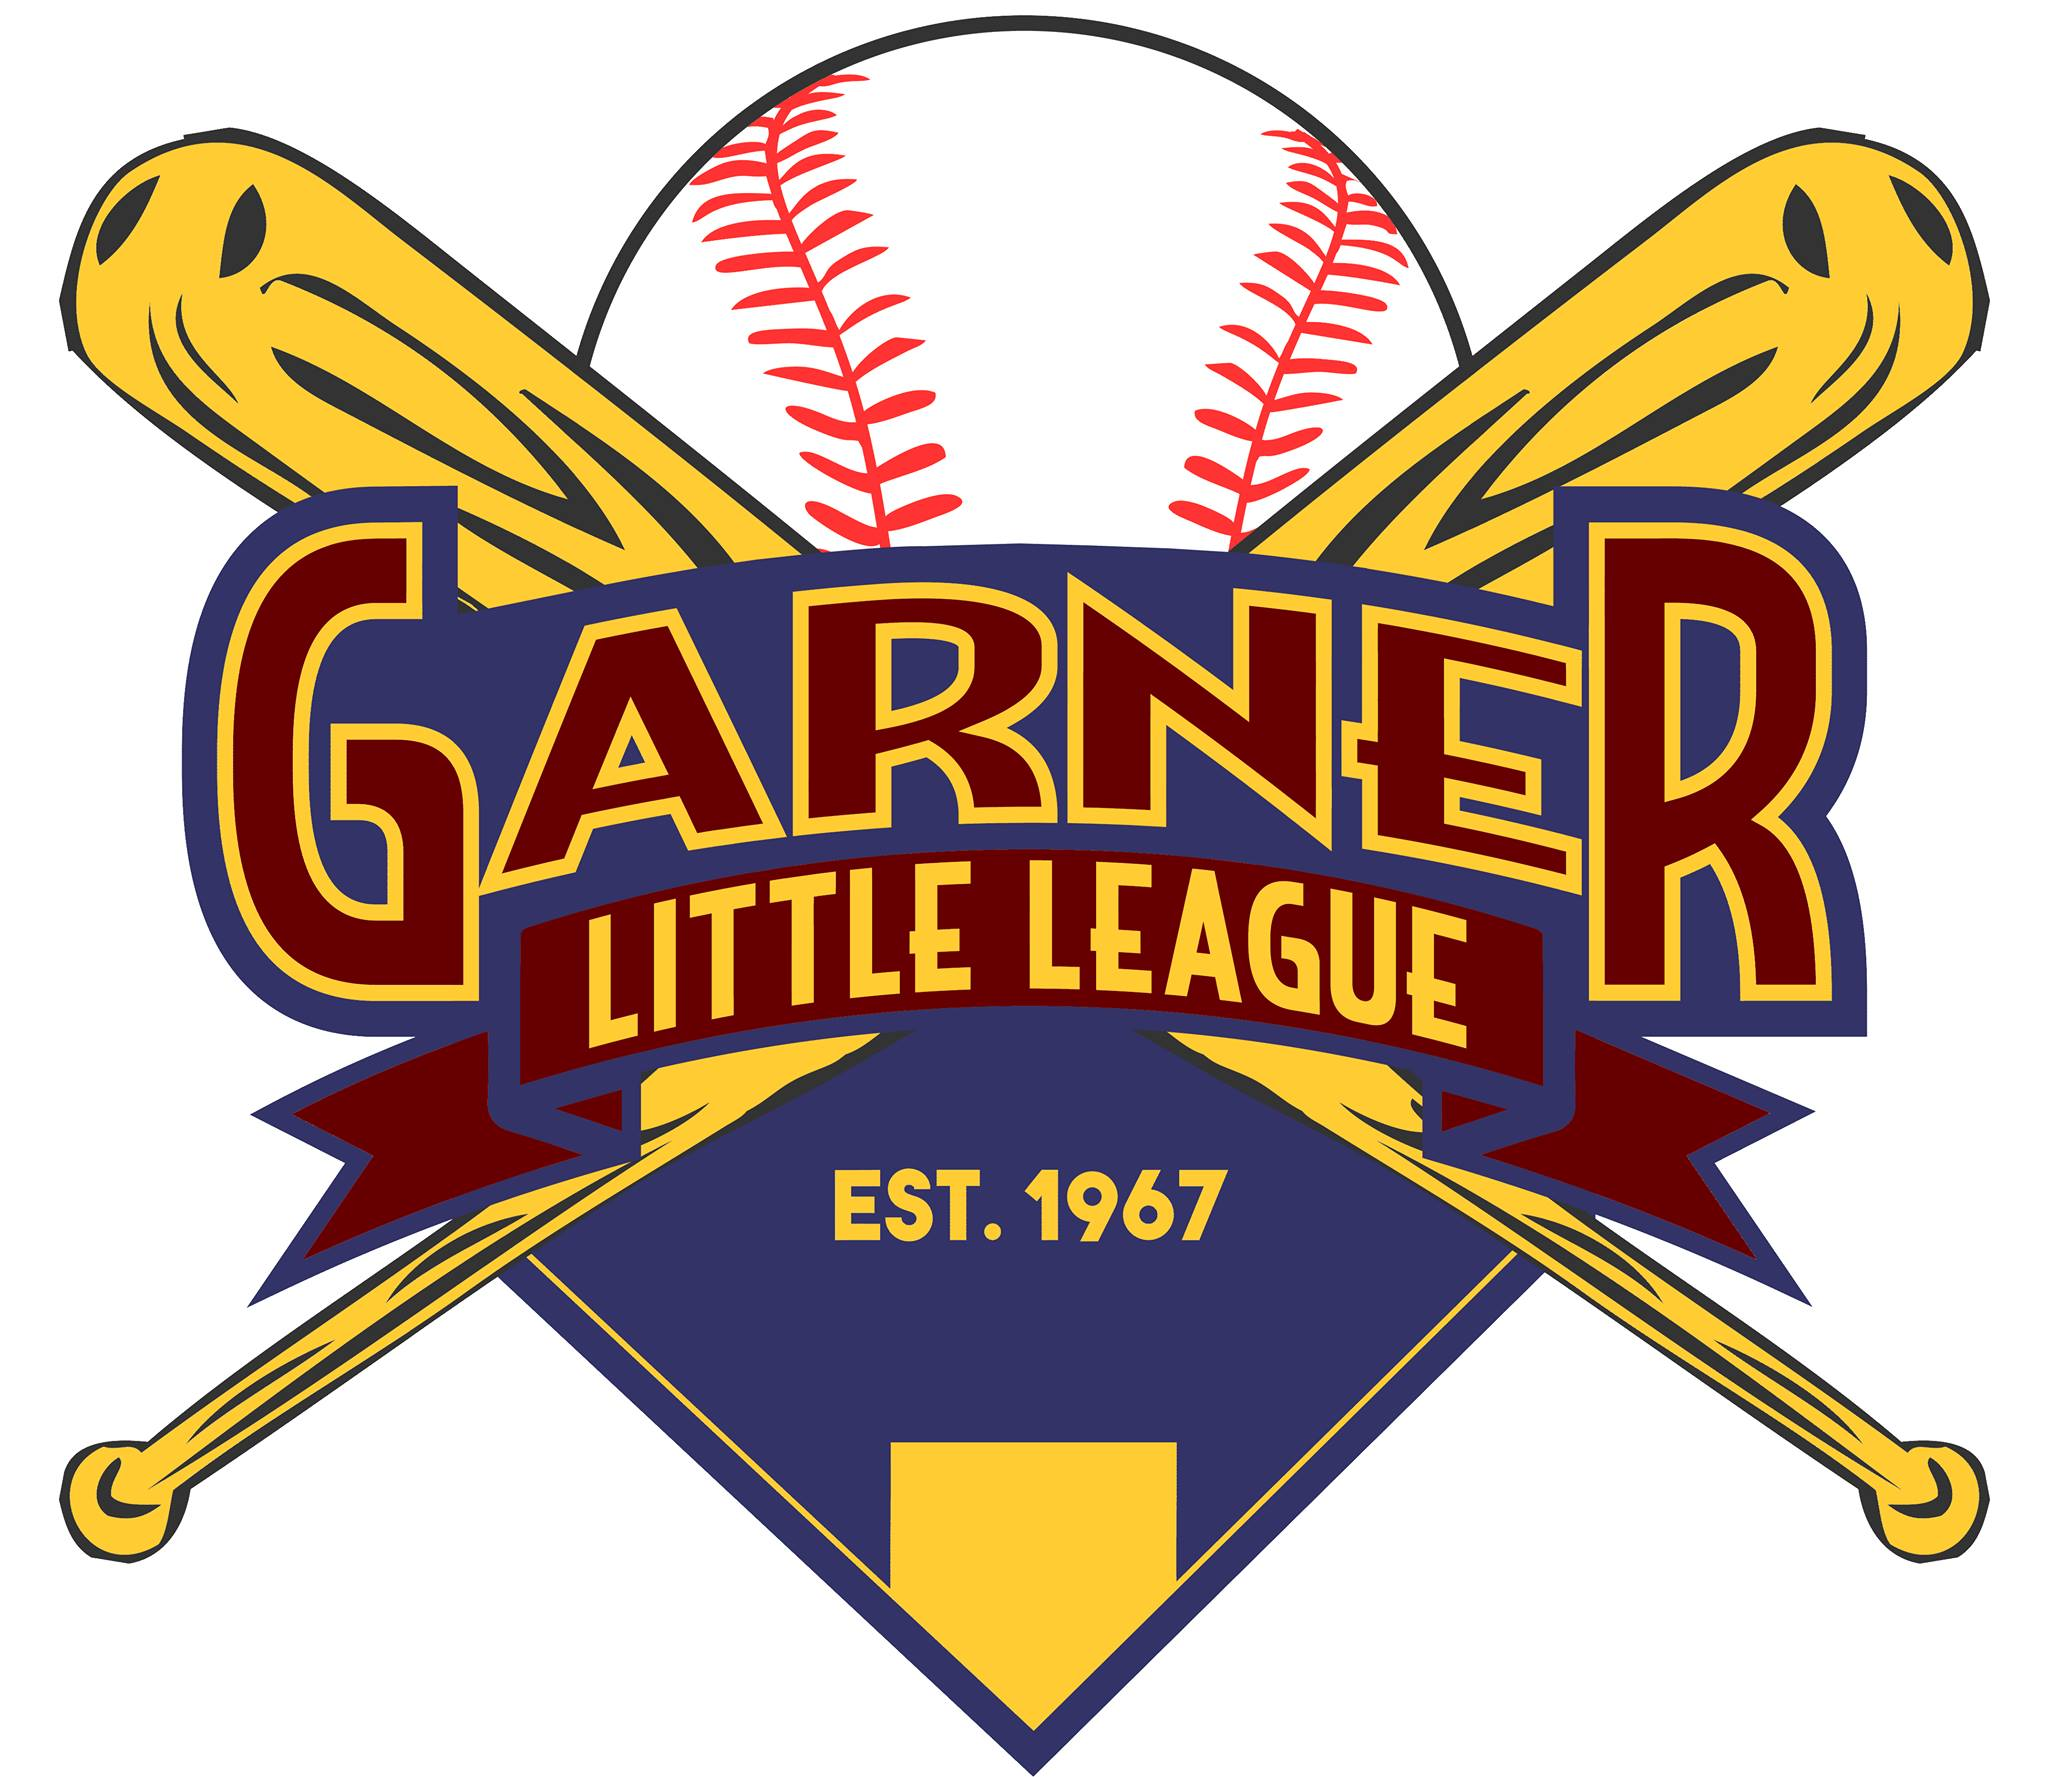 Garner Little League logo